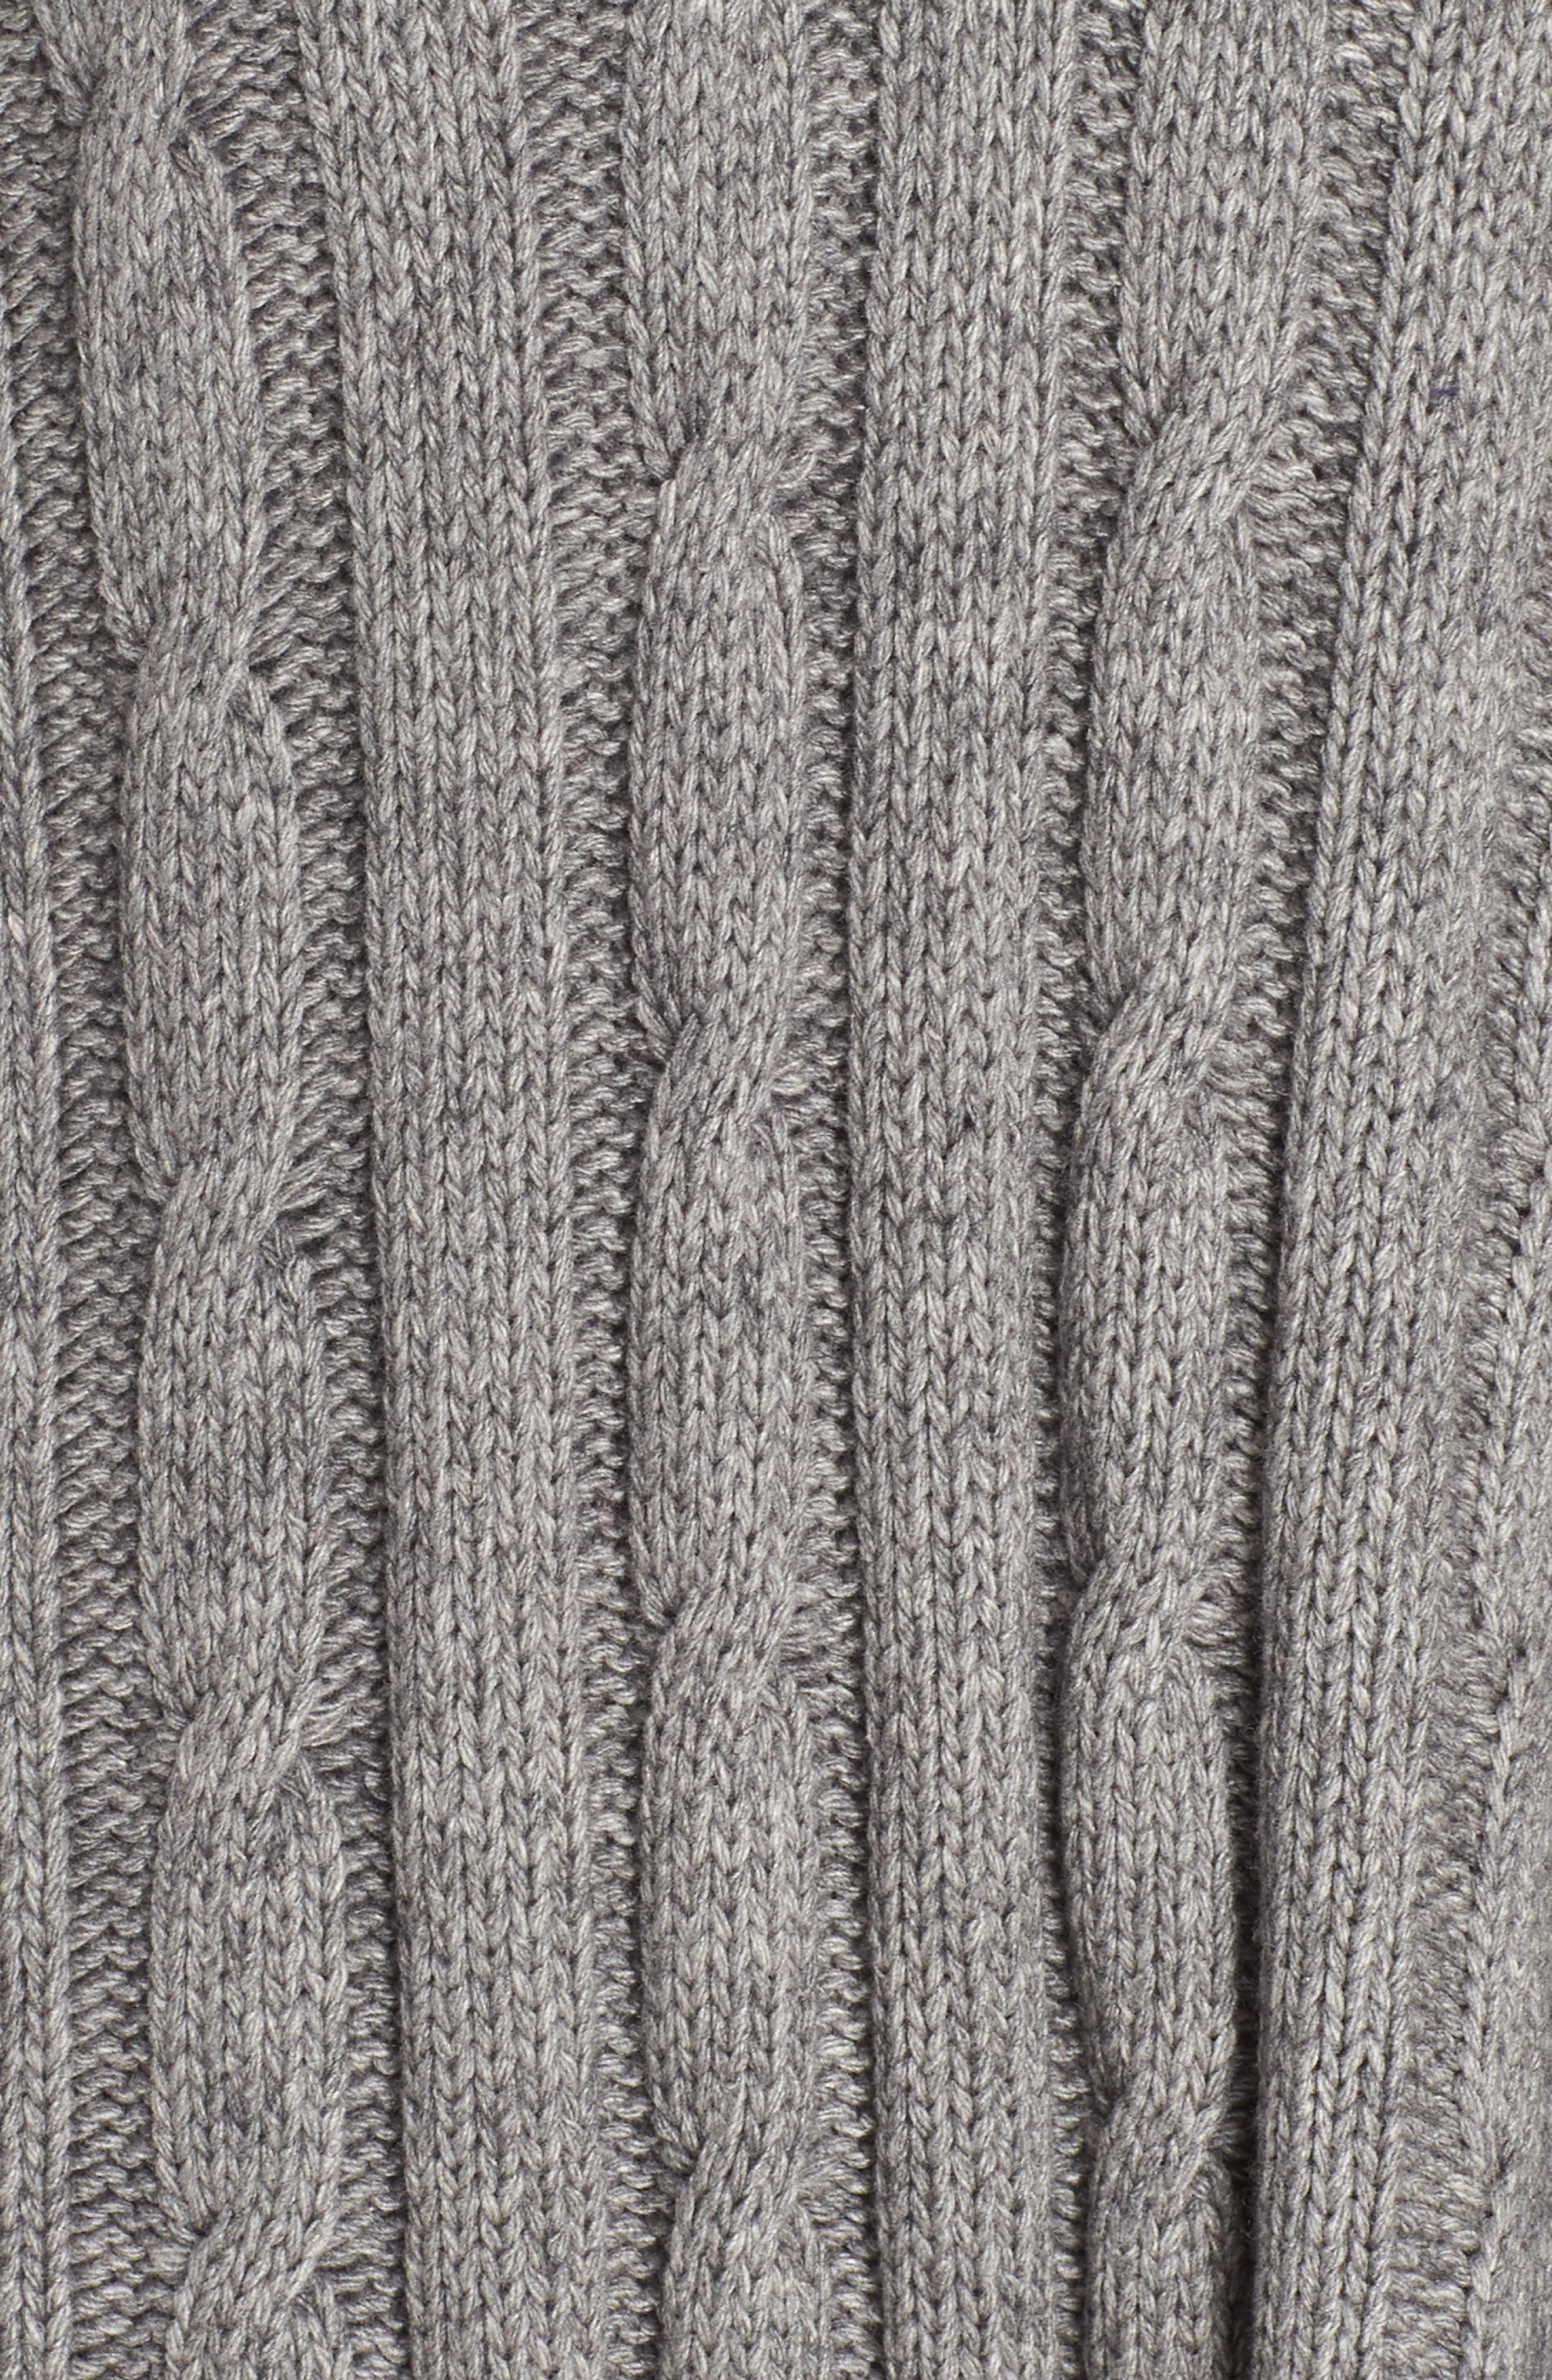 Weslynn Poncho Sweater,                             Alternate thumbnail 5, color,                             GREY HEATHER